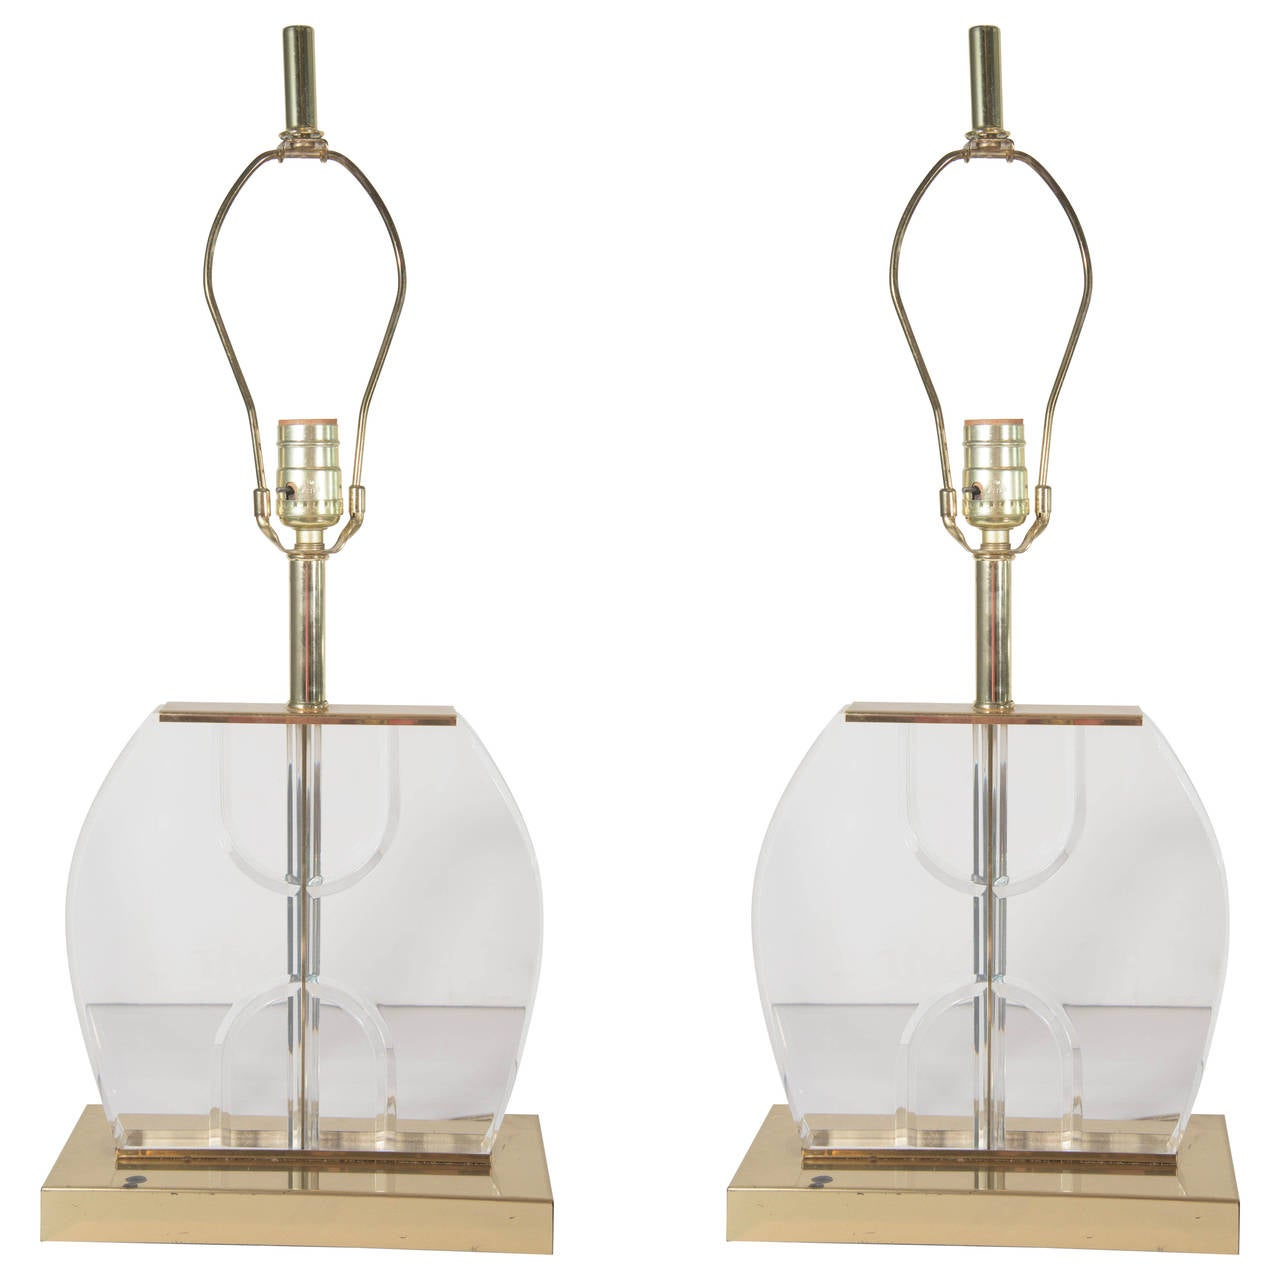 Pair of 1970's Table Lamps in Lucite and Brass